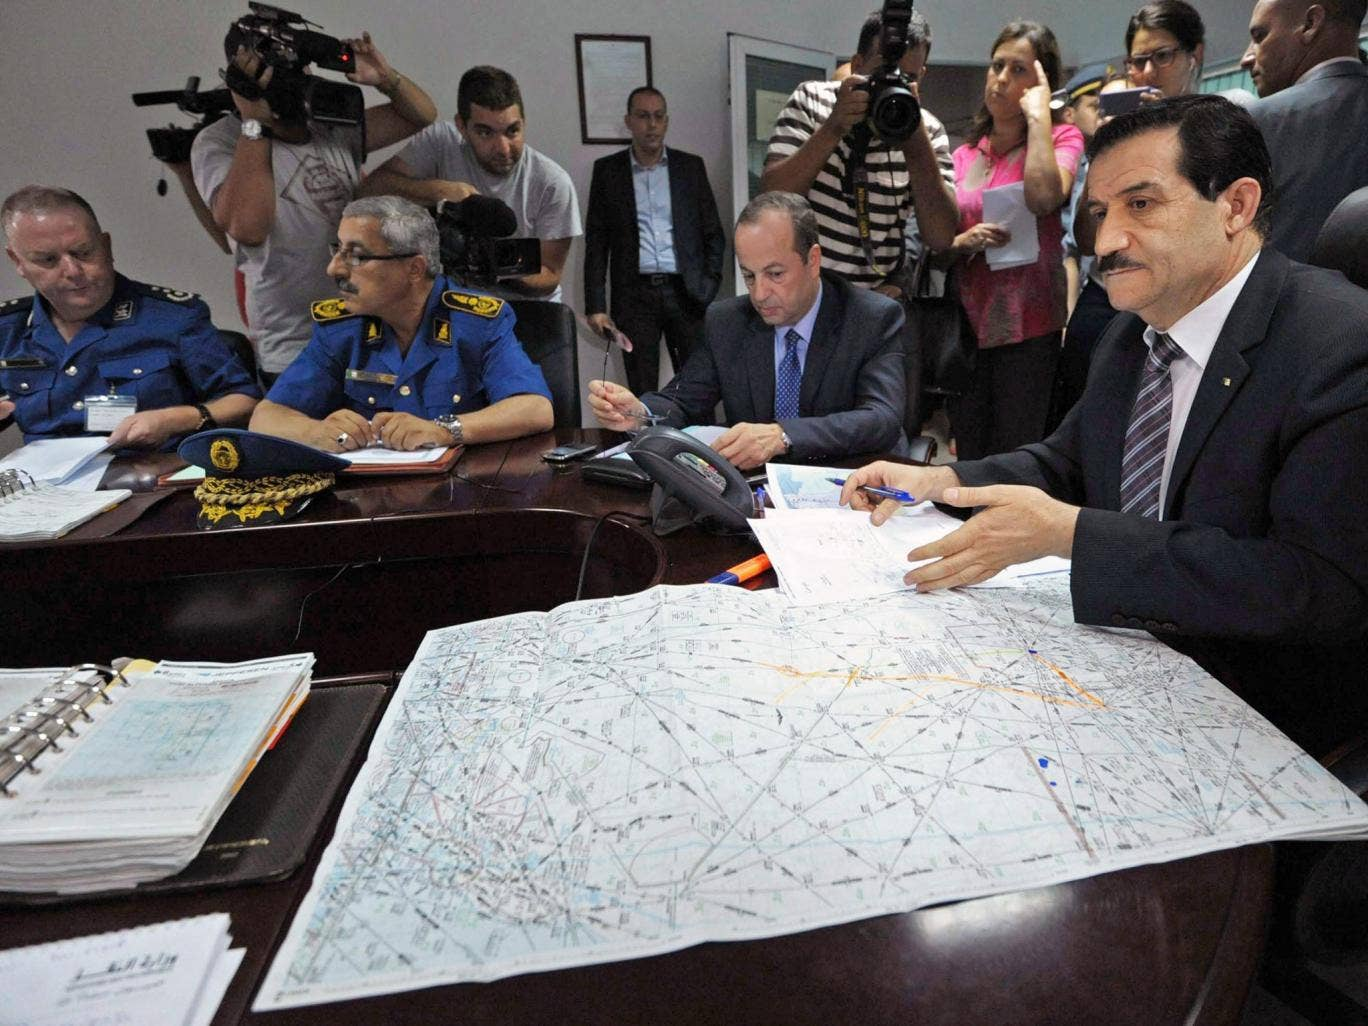 Algerian Minister of Transport Amar Ghoul (R) chairs an Algerian crisis unit meeting at the Houari-Boumediene International Airport in Algiers, Algeria, 24 July 2014